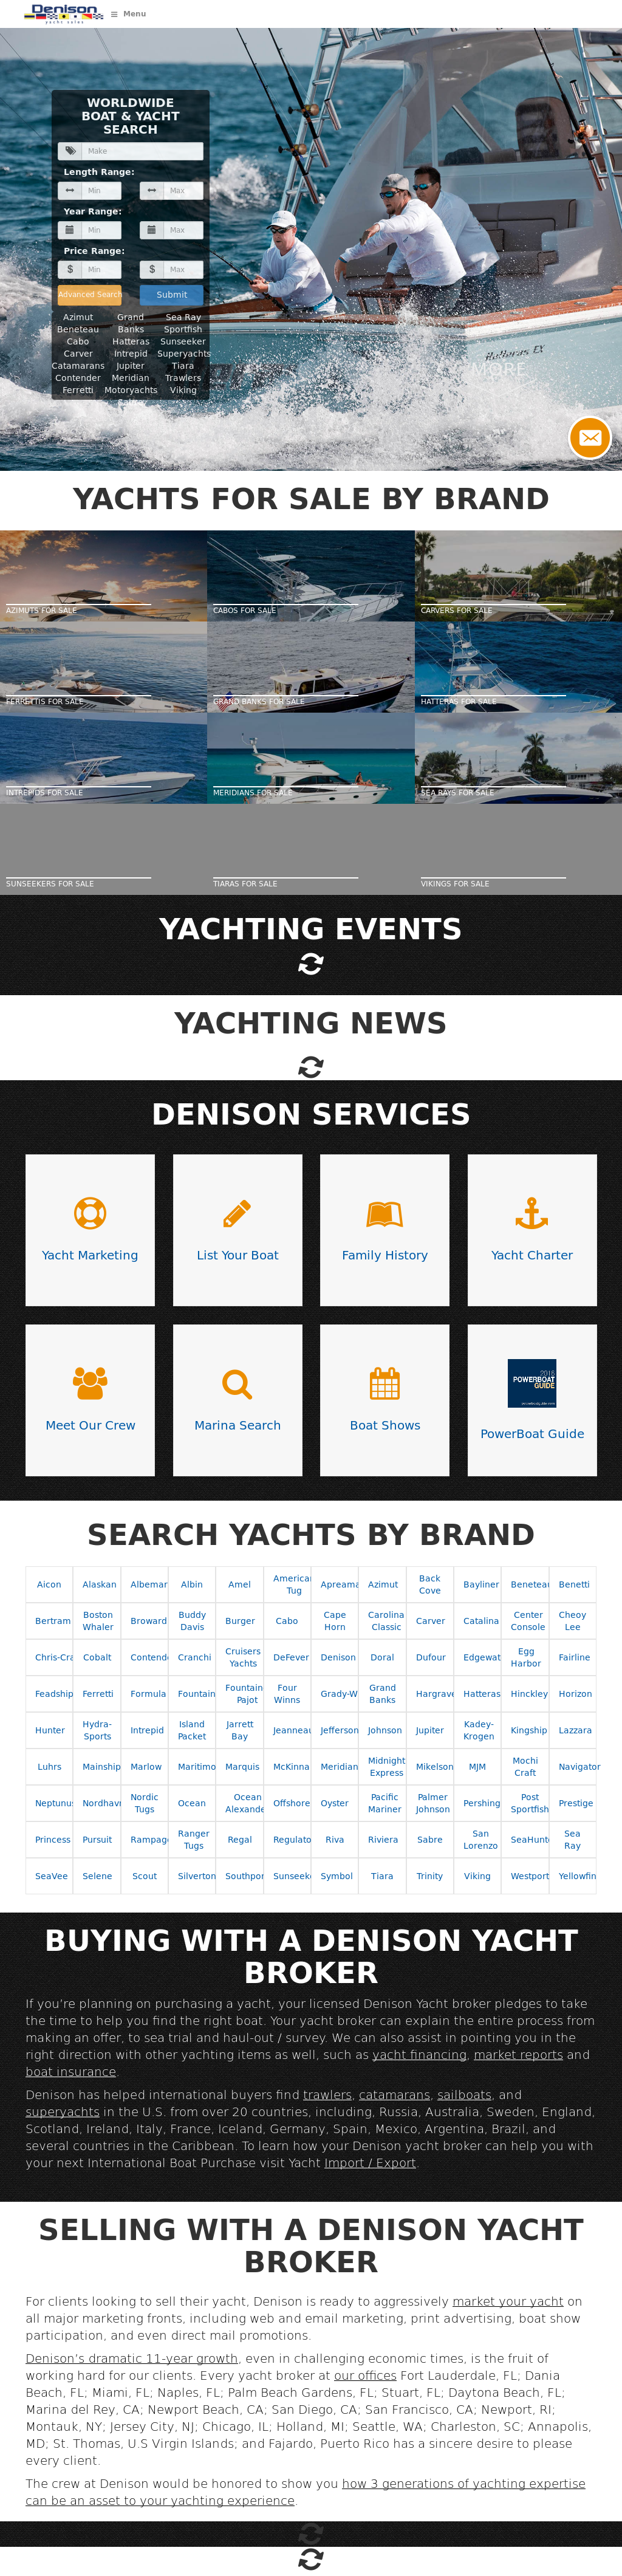 Black Pearl Yacht Sales Competitors, Revenue and Employees